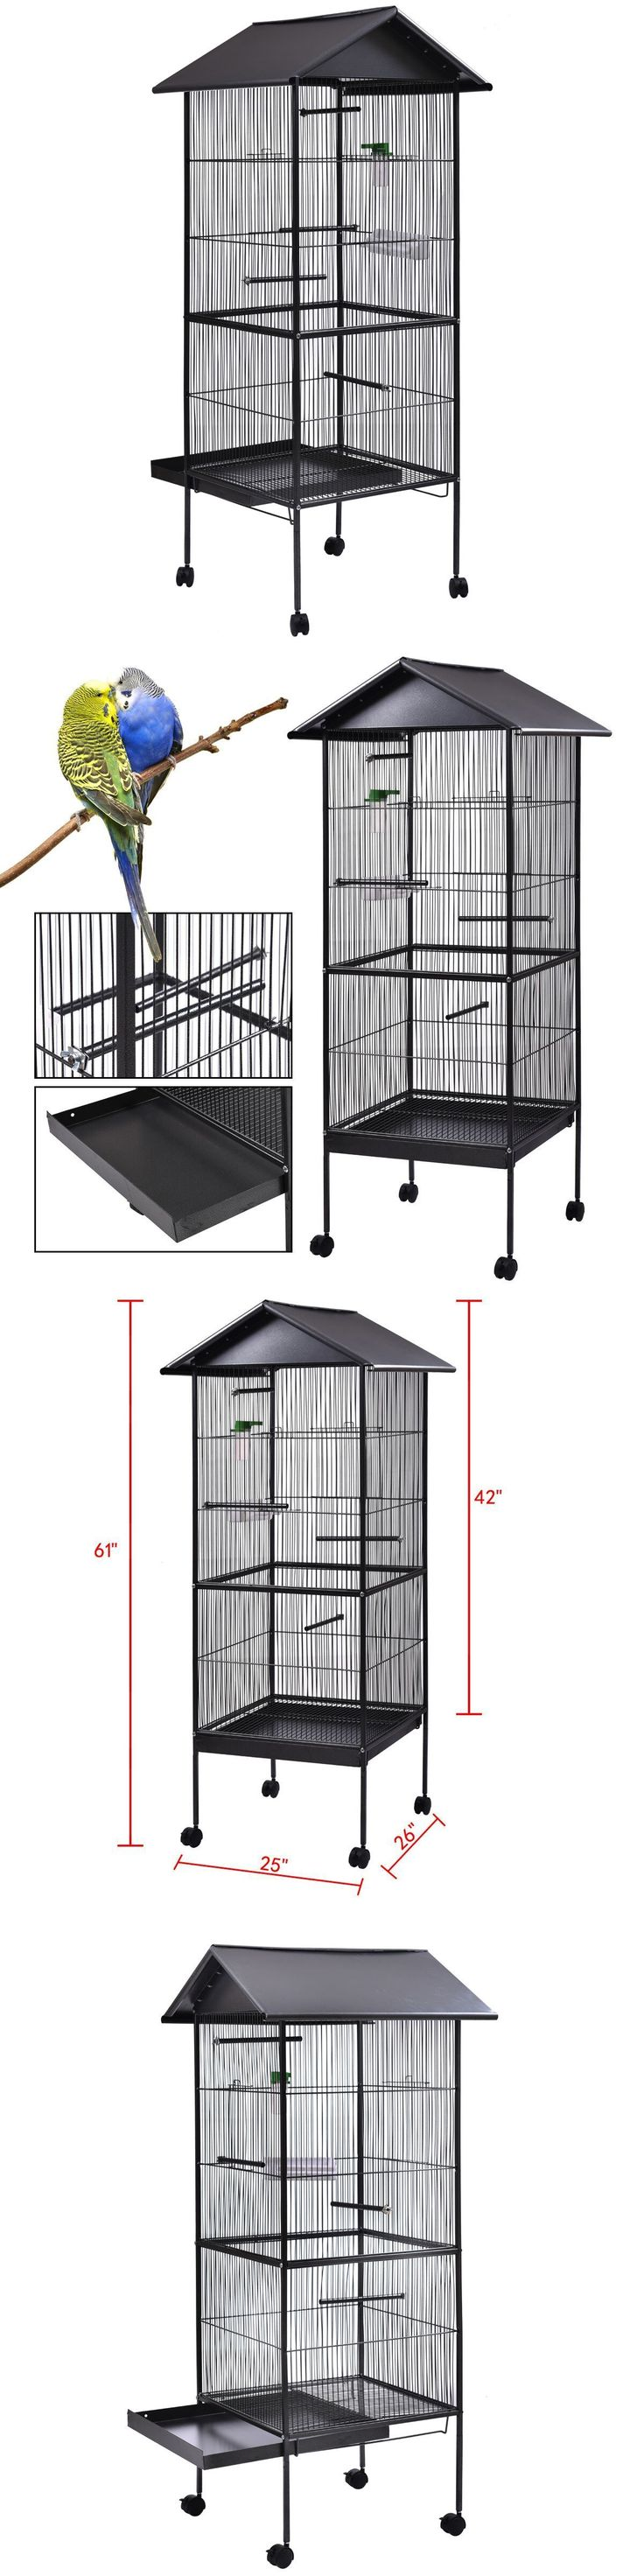 Cages 46289: Bird Cage 61 Iron Parrot Finch Play Top Pet Supplies W/Perch Stand Two Doors -> BUY IT NOW ONLY: $64.99 on eBay!